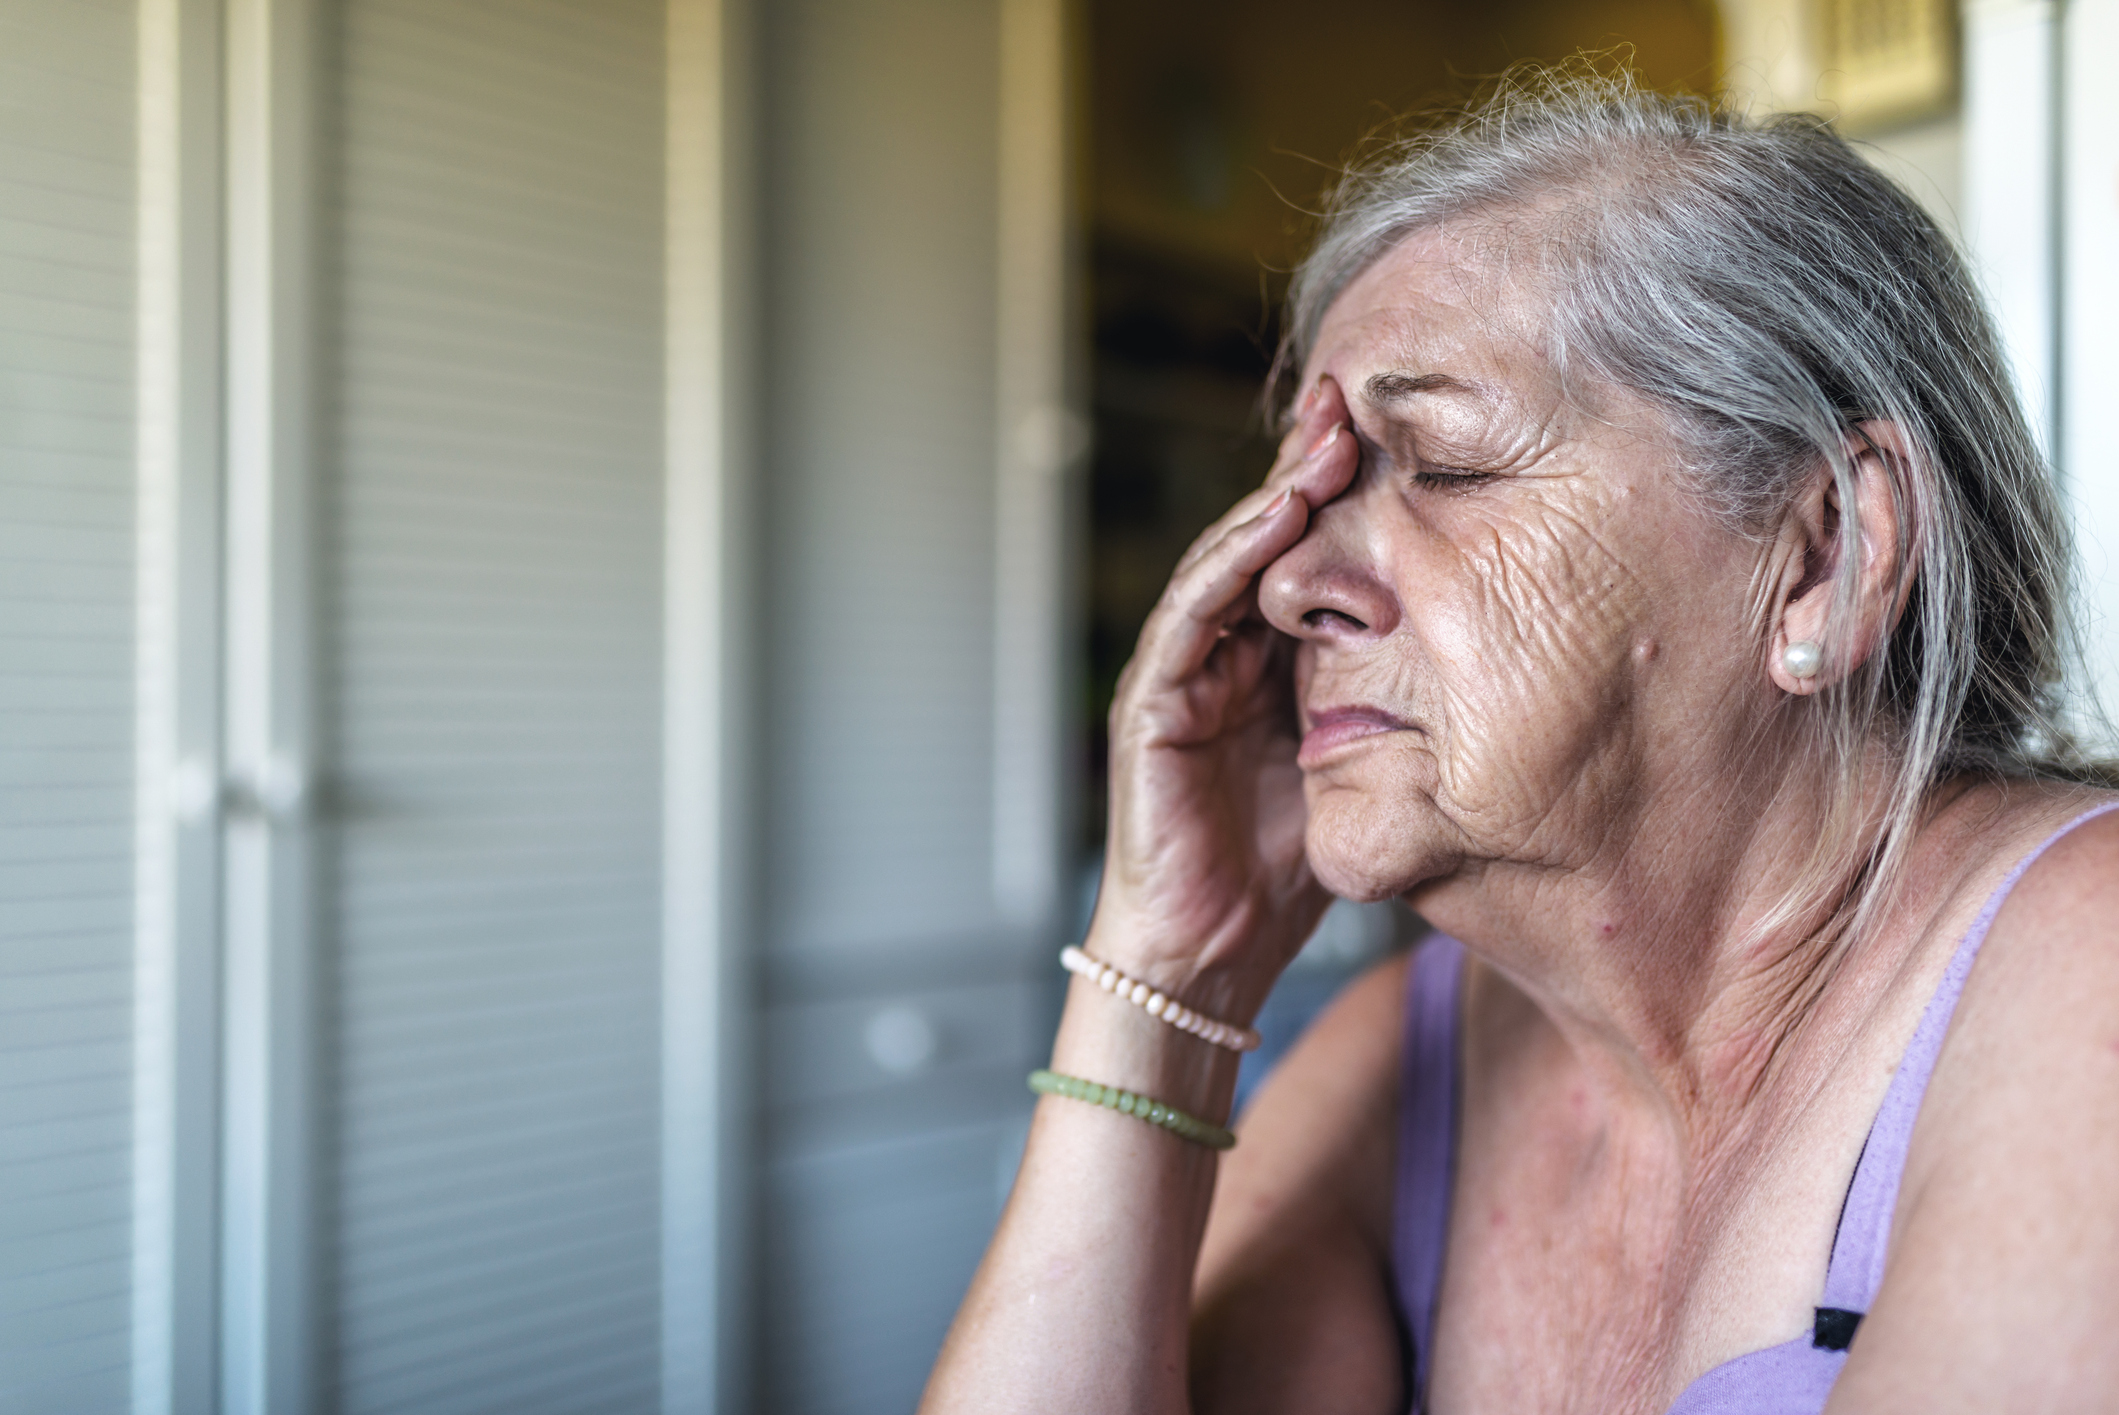 Elderly woman looking distressed (Thinkstock/PA)